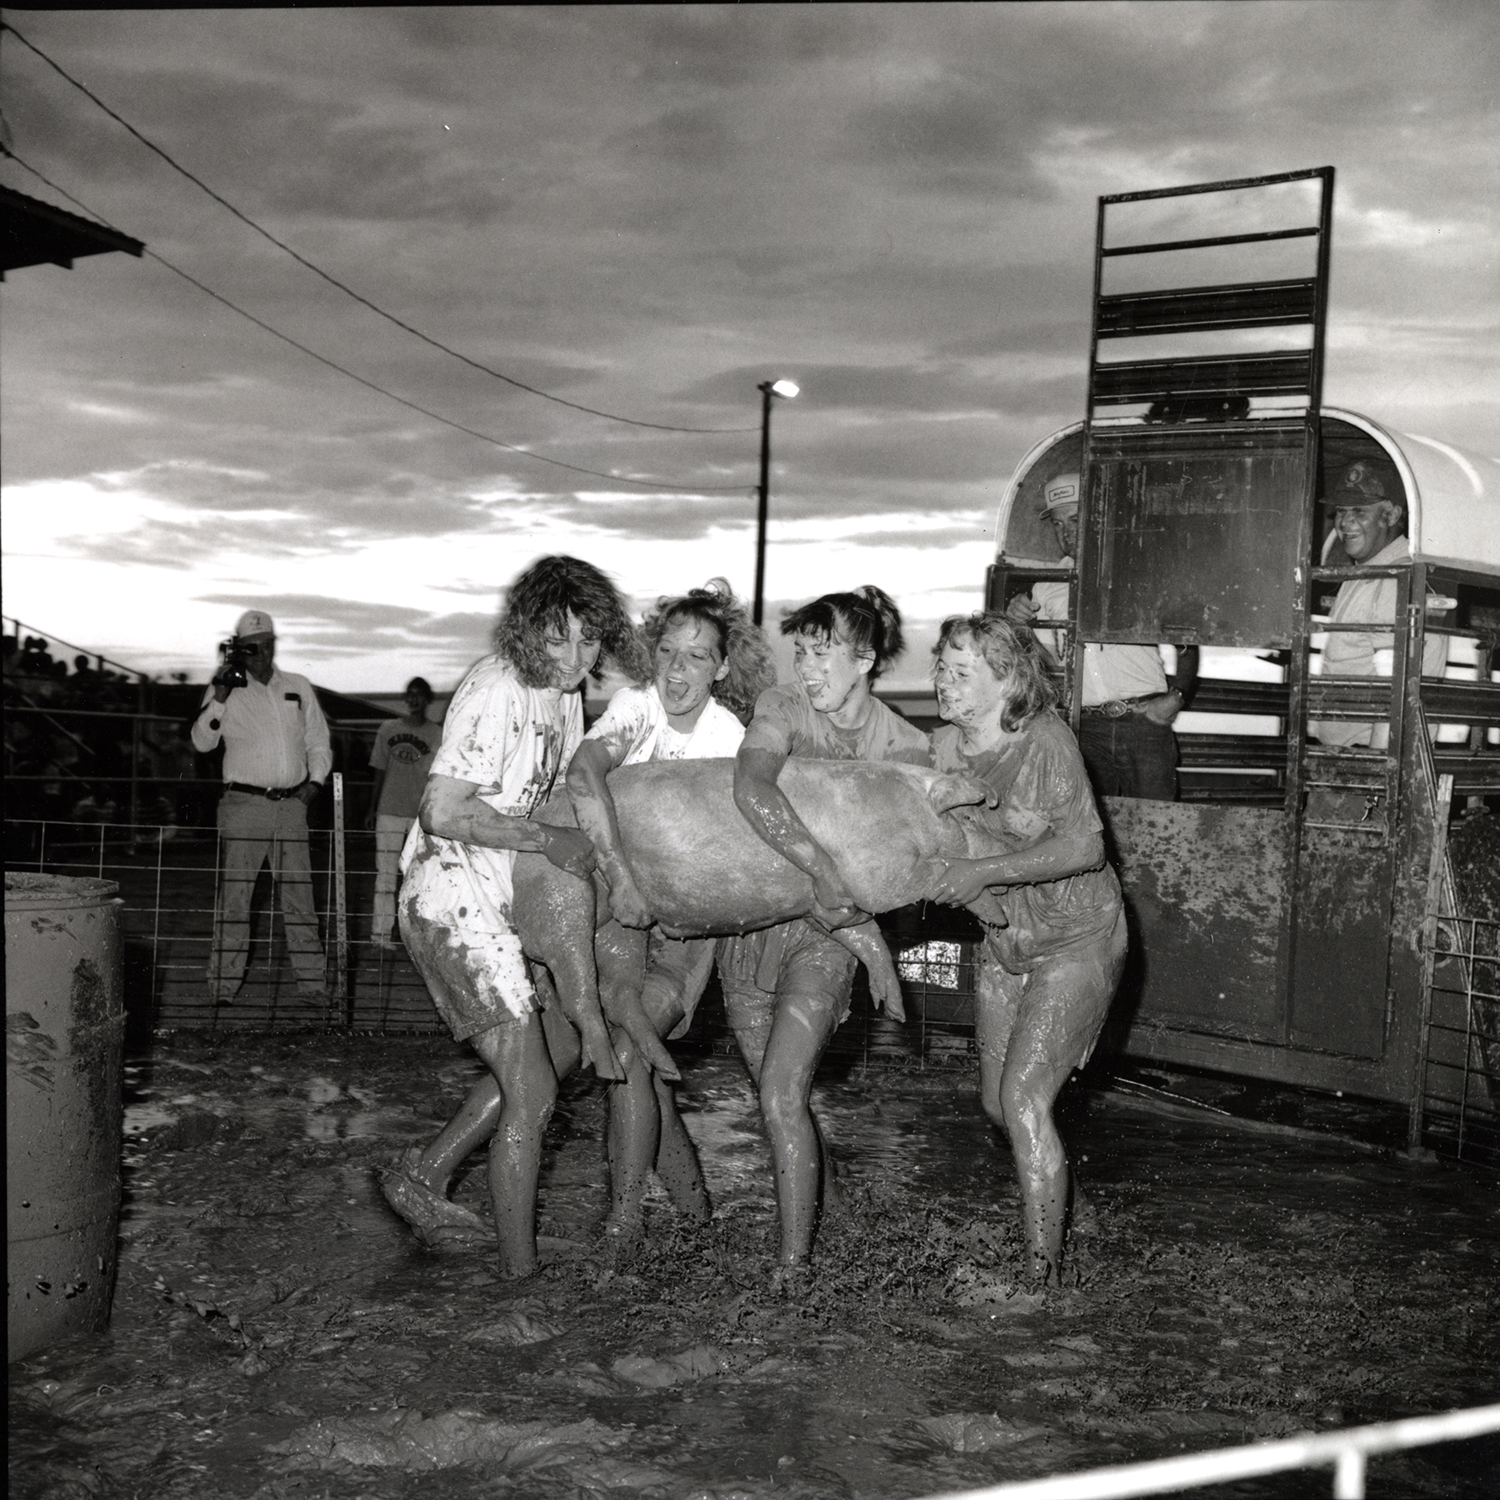 Girls with Muddy Pig, Wheatland, Wyoming, archival pigment print,16x20, 1989